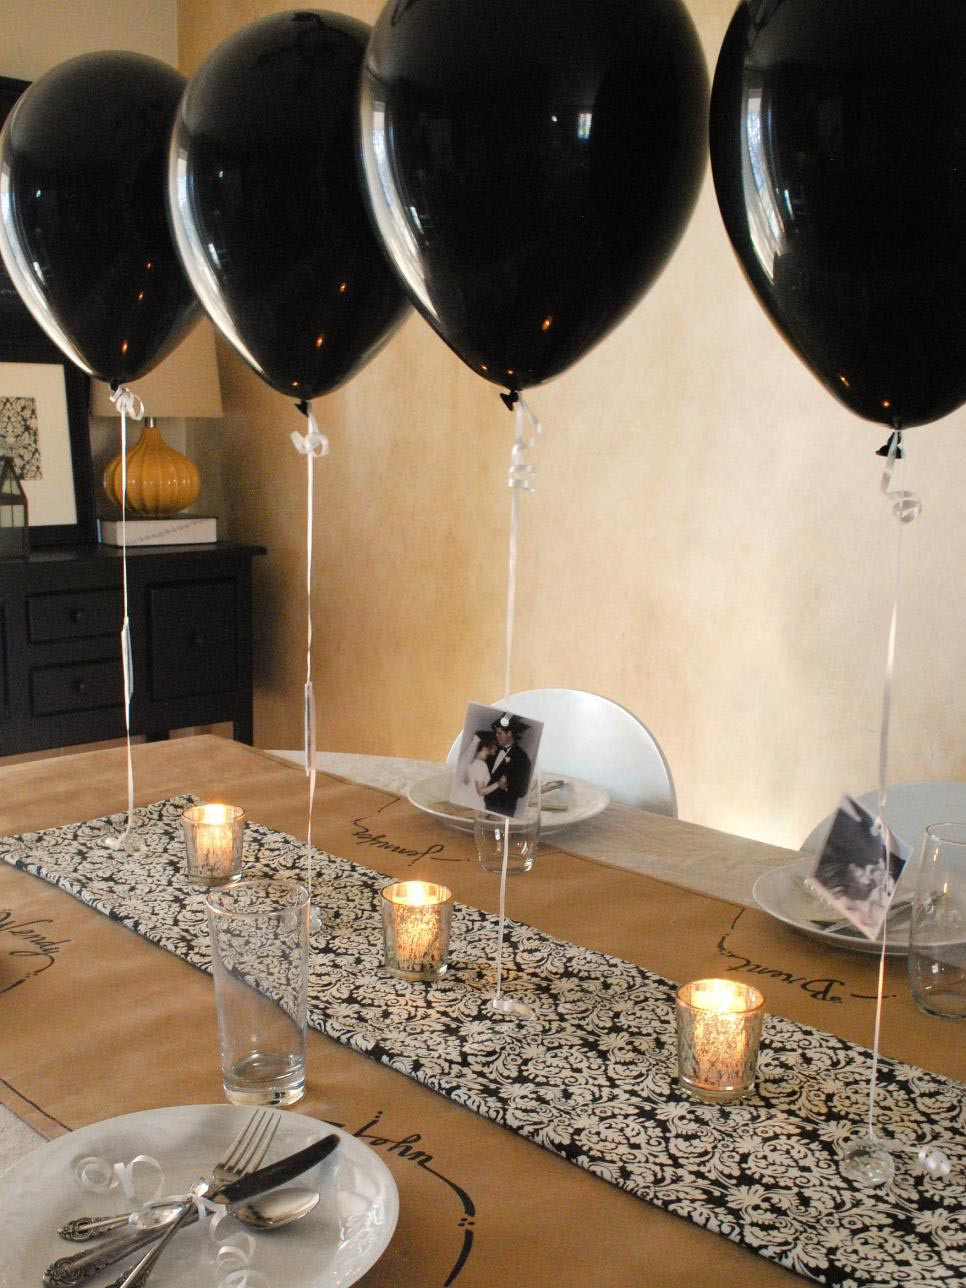 Themed Dinner Party Ideas For Adults  Dinner Party Themes For Adults